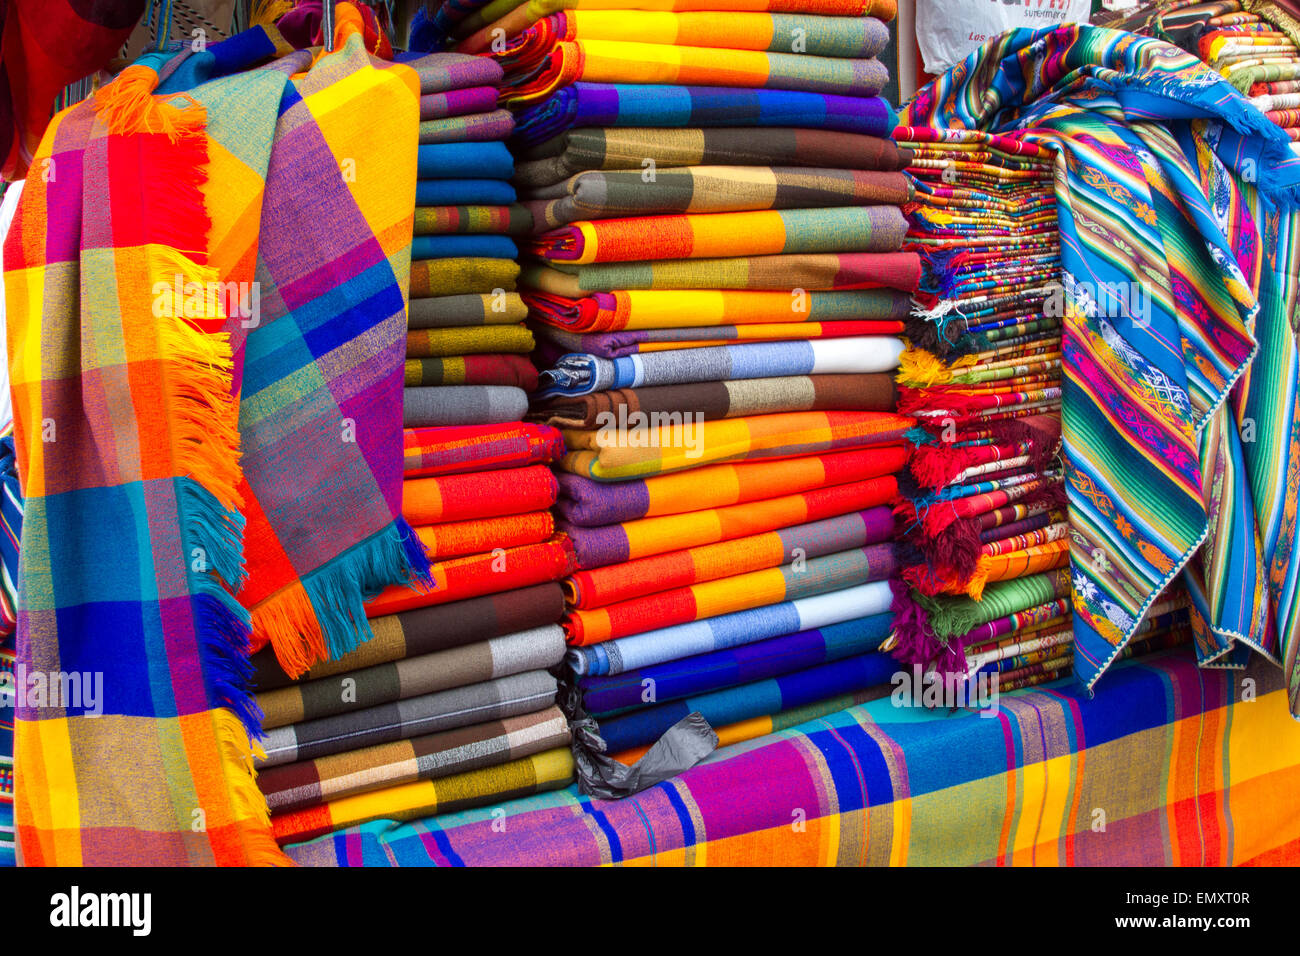 Brightly colored fabrics on display for sale at Otavalo market, Ecuador - Stock Image